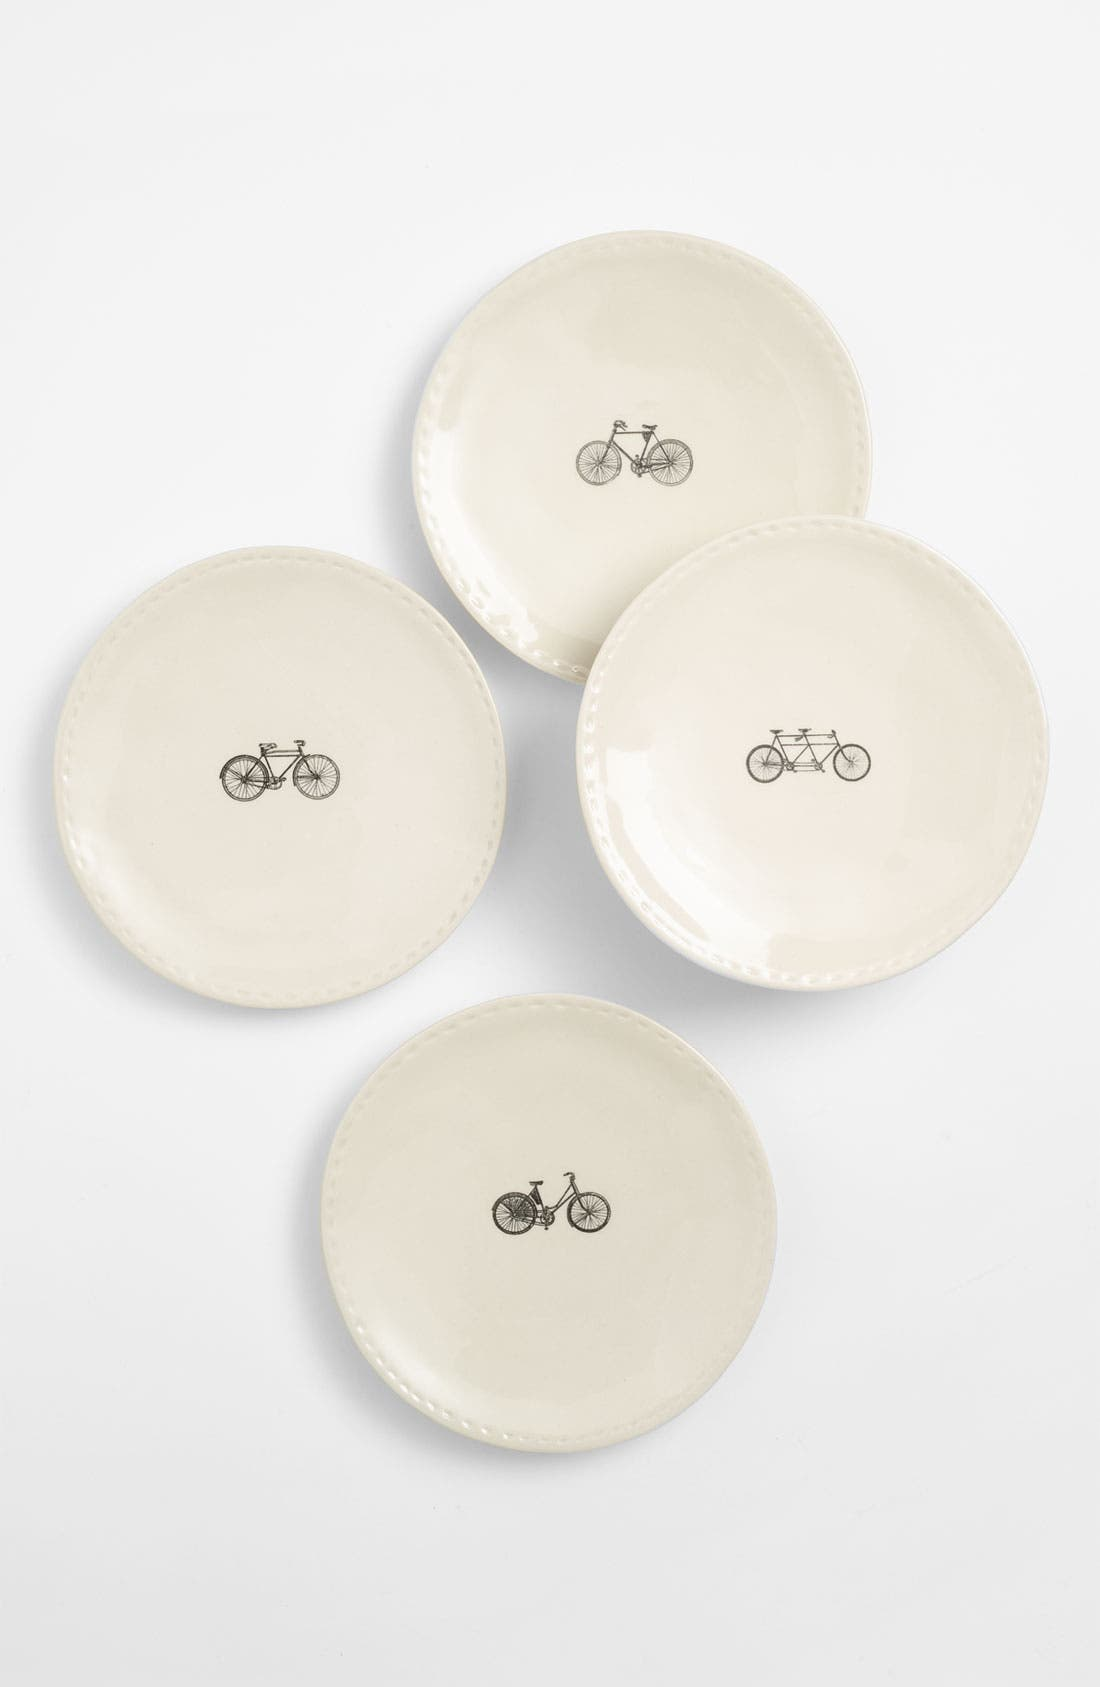 Main Image - Rae Dunn by Magenta Bike Plates (Set of 4)